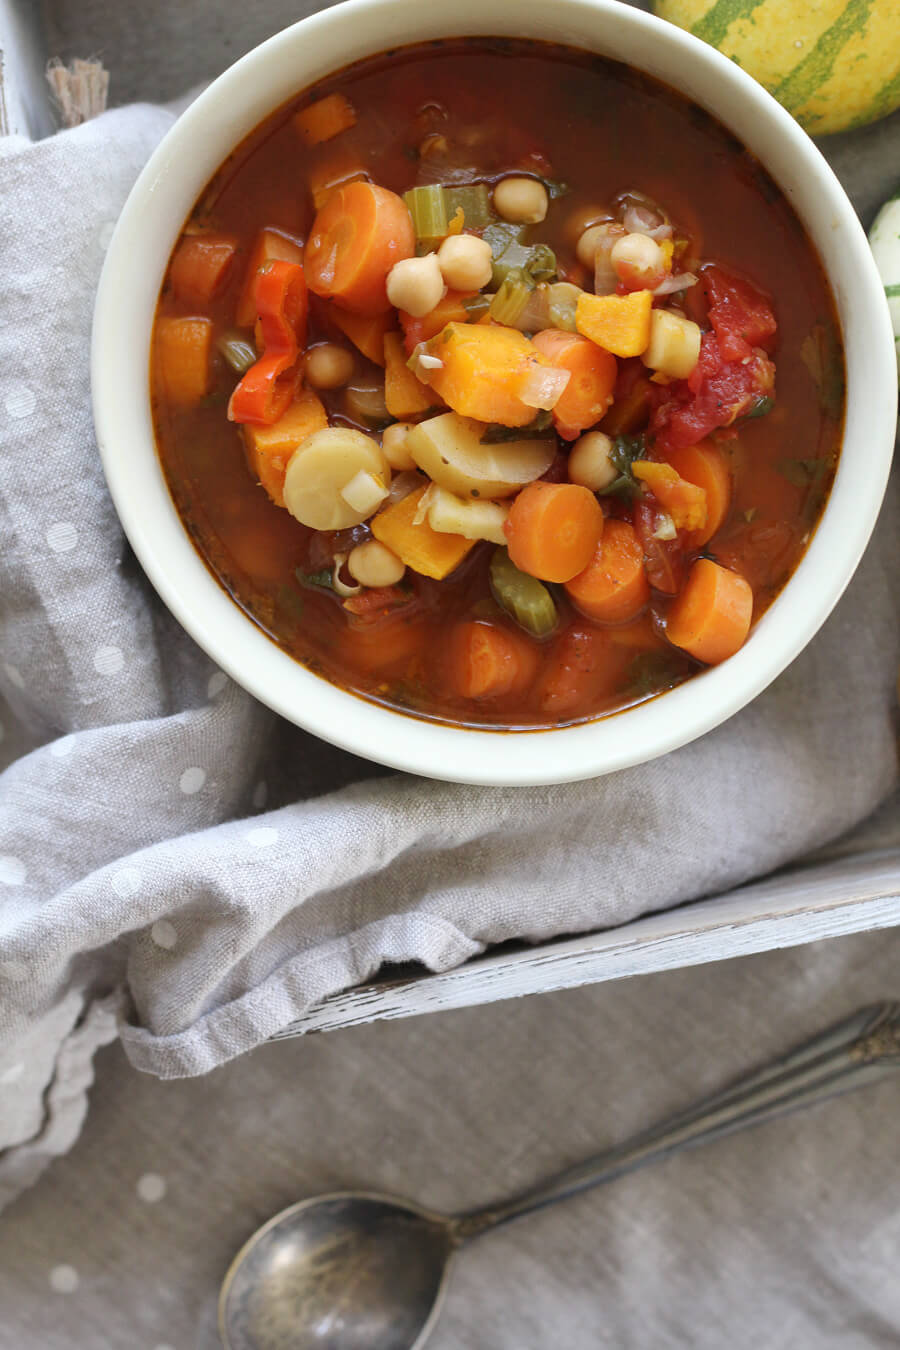 A bowl of homemade vegetable soup with carrots, sweet potatoes, tomatoes, parsnips, celery and more.